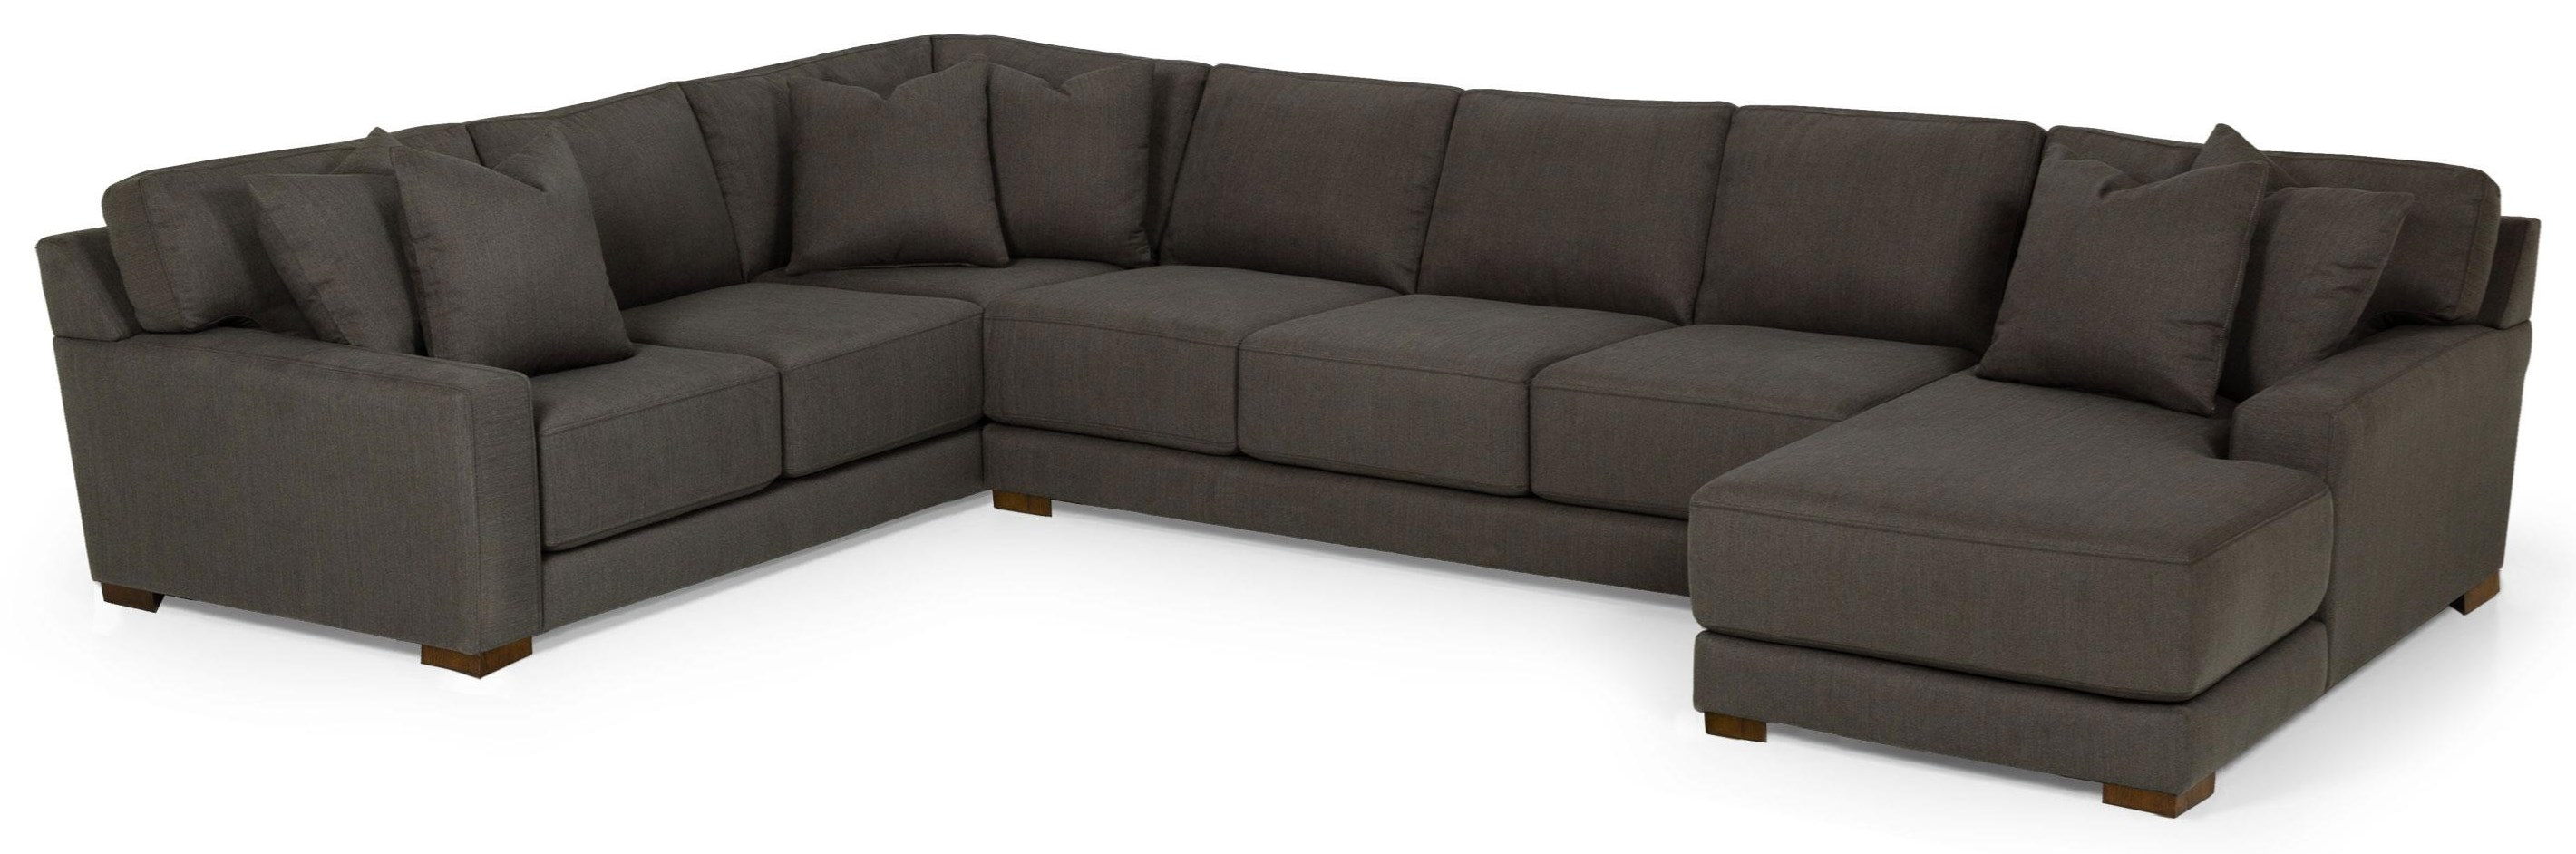 Dax 3 PIECE SECTIONAL WITH SOFA CHAISE by Sunset Home at Walker's Furniture